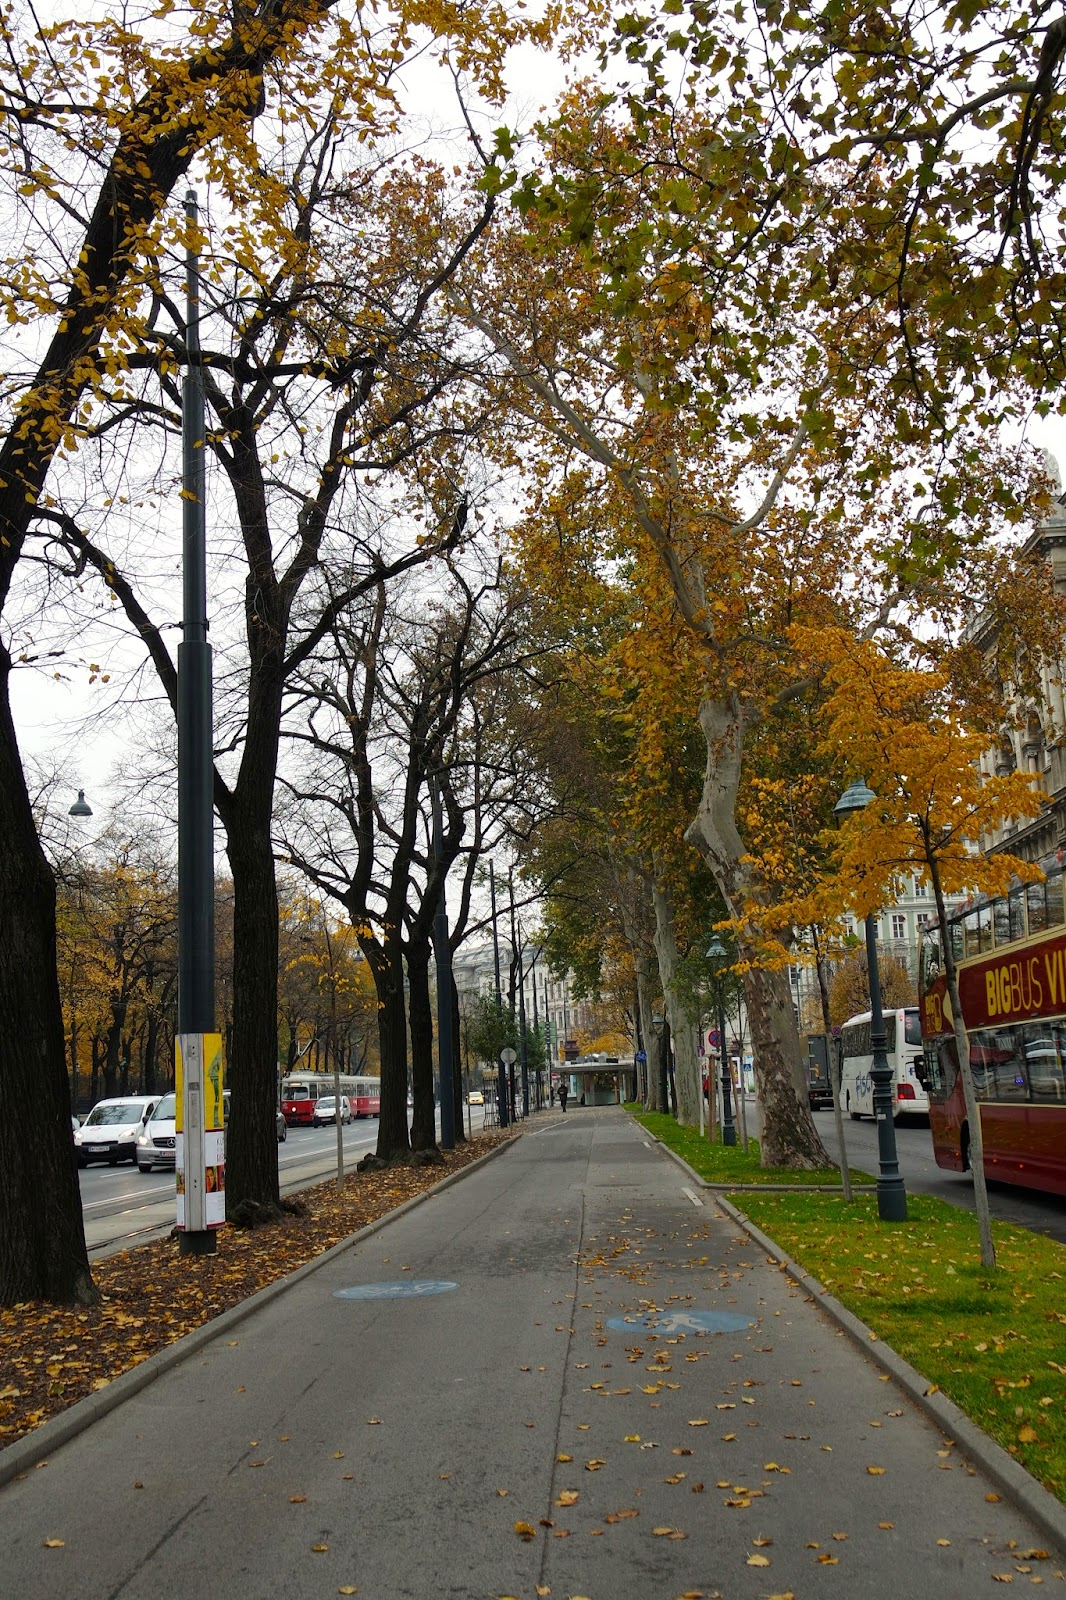 Autumn Yellow Trees near Maria Theresien Platz Vienna